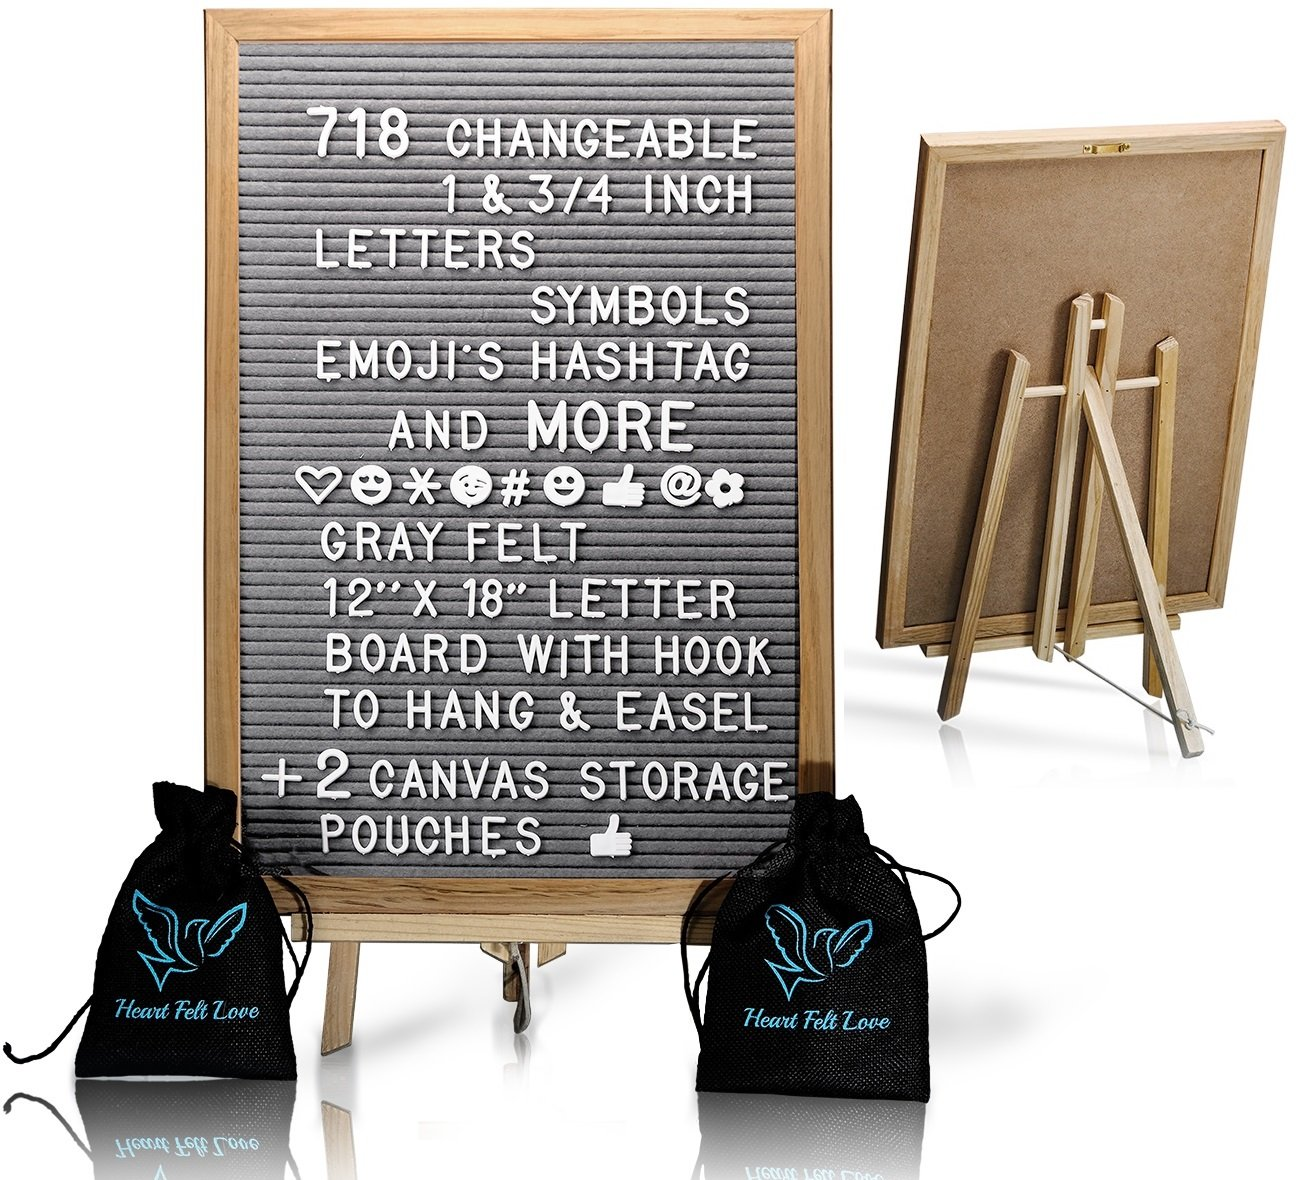 Gray Felt Letter Board With Easel Stand 12 x 18 | 718 Changeable Characters Including 1 inch and ¾ Letters, Symbols, Emojis Hashtag And More | Great For Instagram | Hook To Hang | 2 Storage Pouches